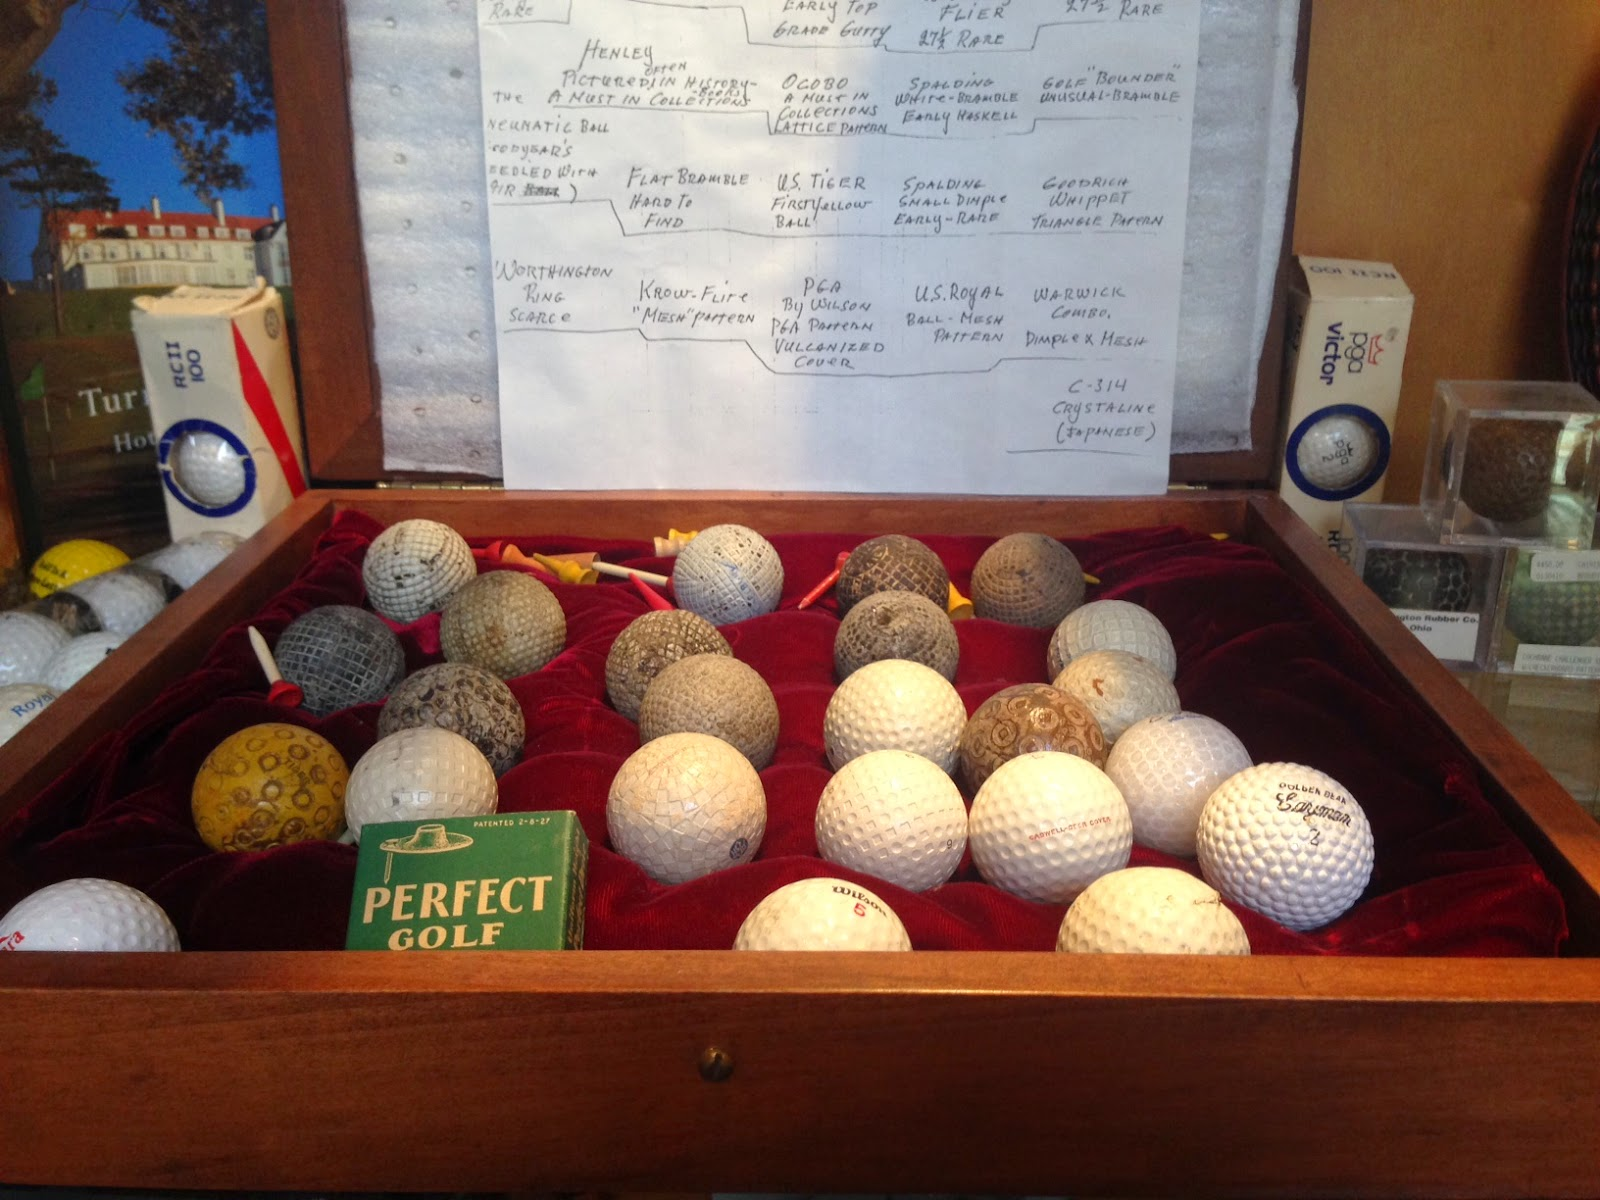 internetmovie.ml premium used golf balls is proud to be amongst the North American leaders as the source used repeatedly by thousands of golfers annually for their Half Price Golf Balls. Over leading brands of discounted recycled golf balls and refinished golf balls are presented to you with quality and discounts second to none.